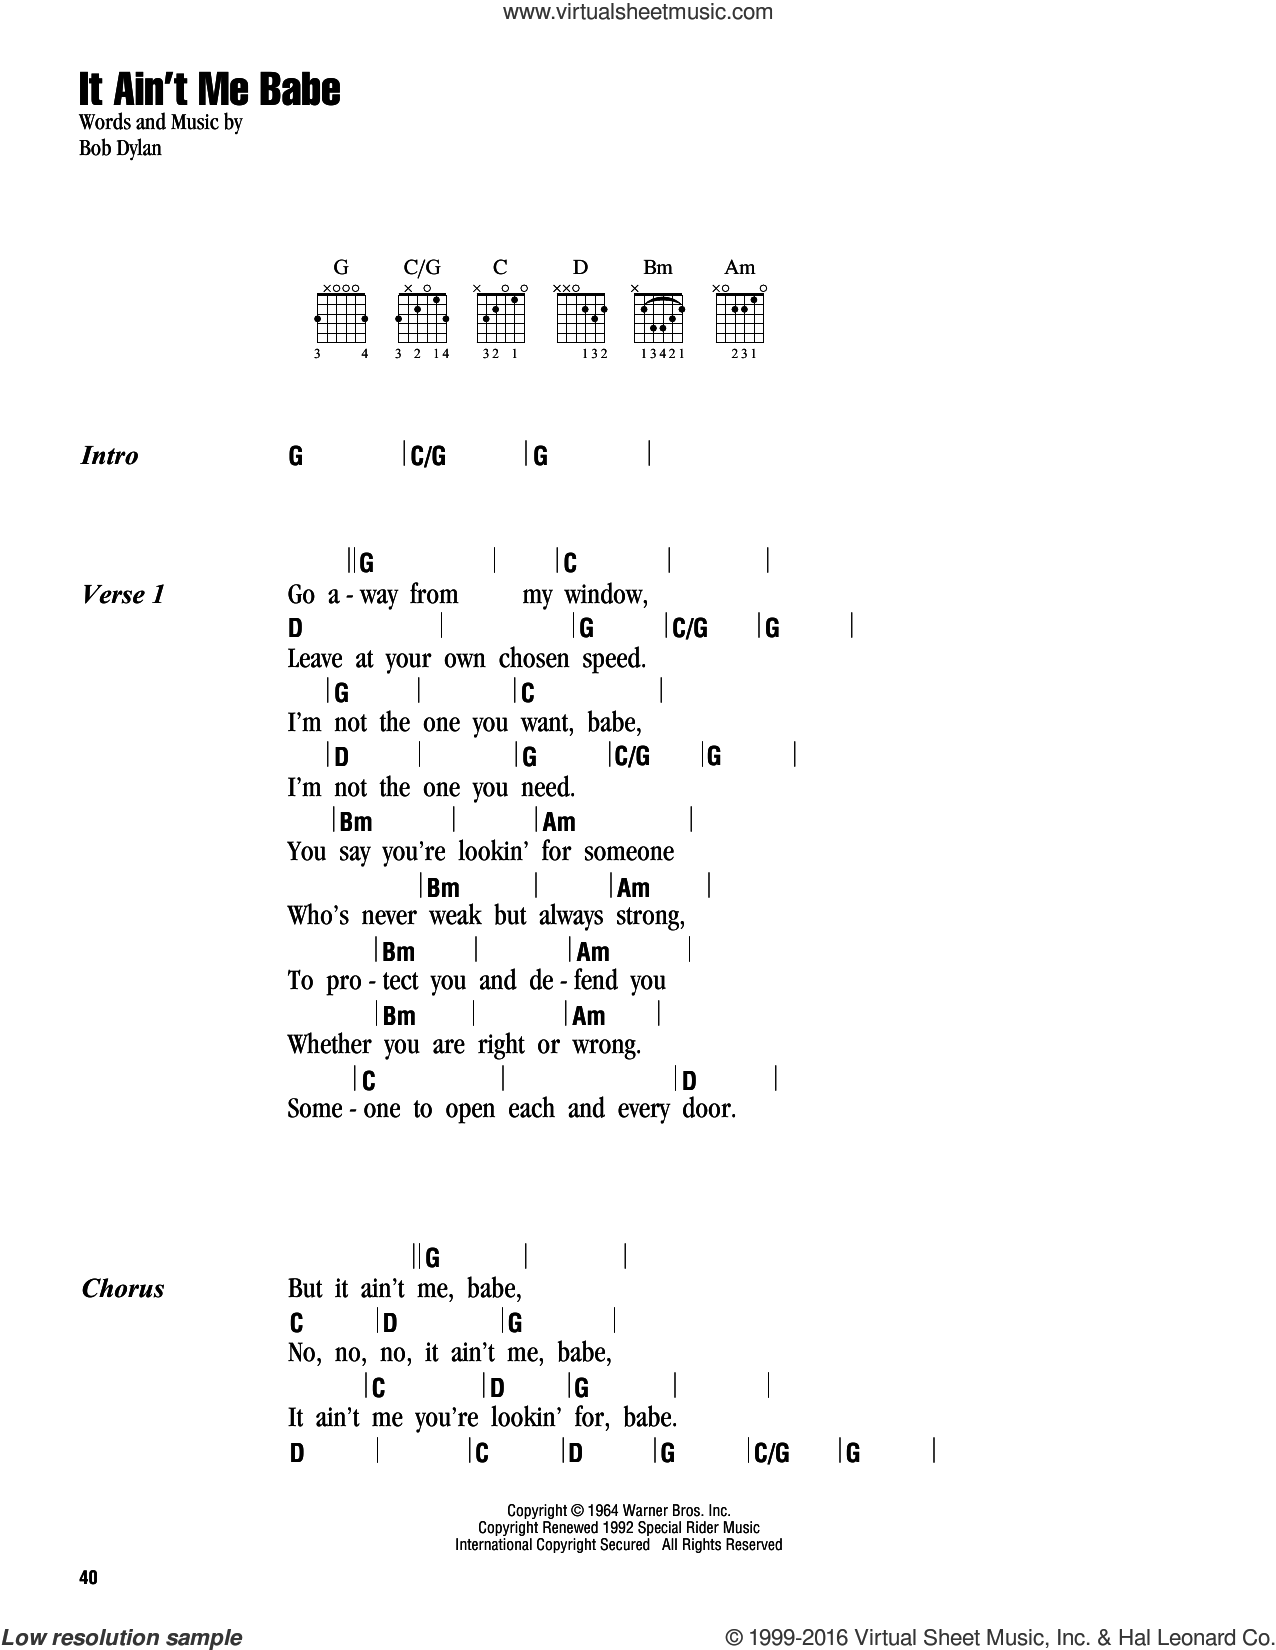 It Ain't Me Babe sheet music for guitar (chords) by Bob Dylan, Johnny Cash and Miscellaneous, intermediate